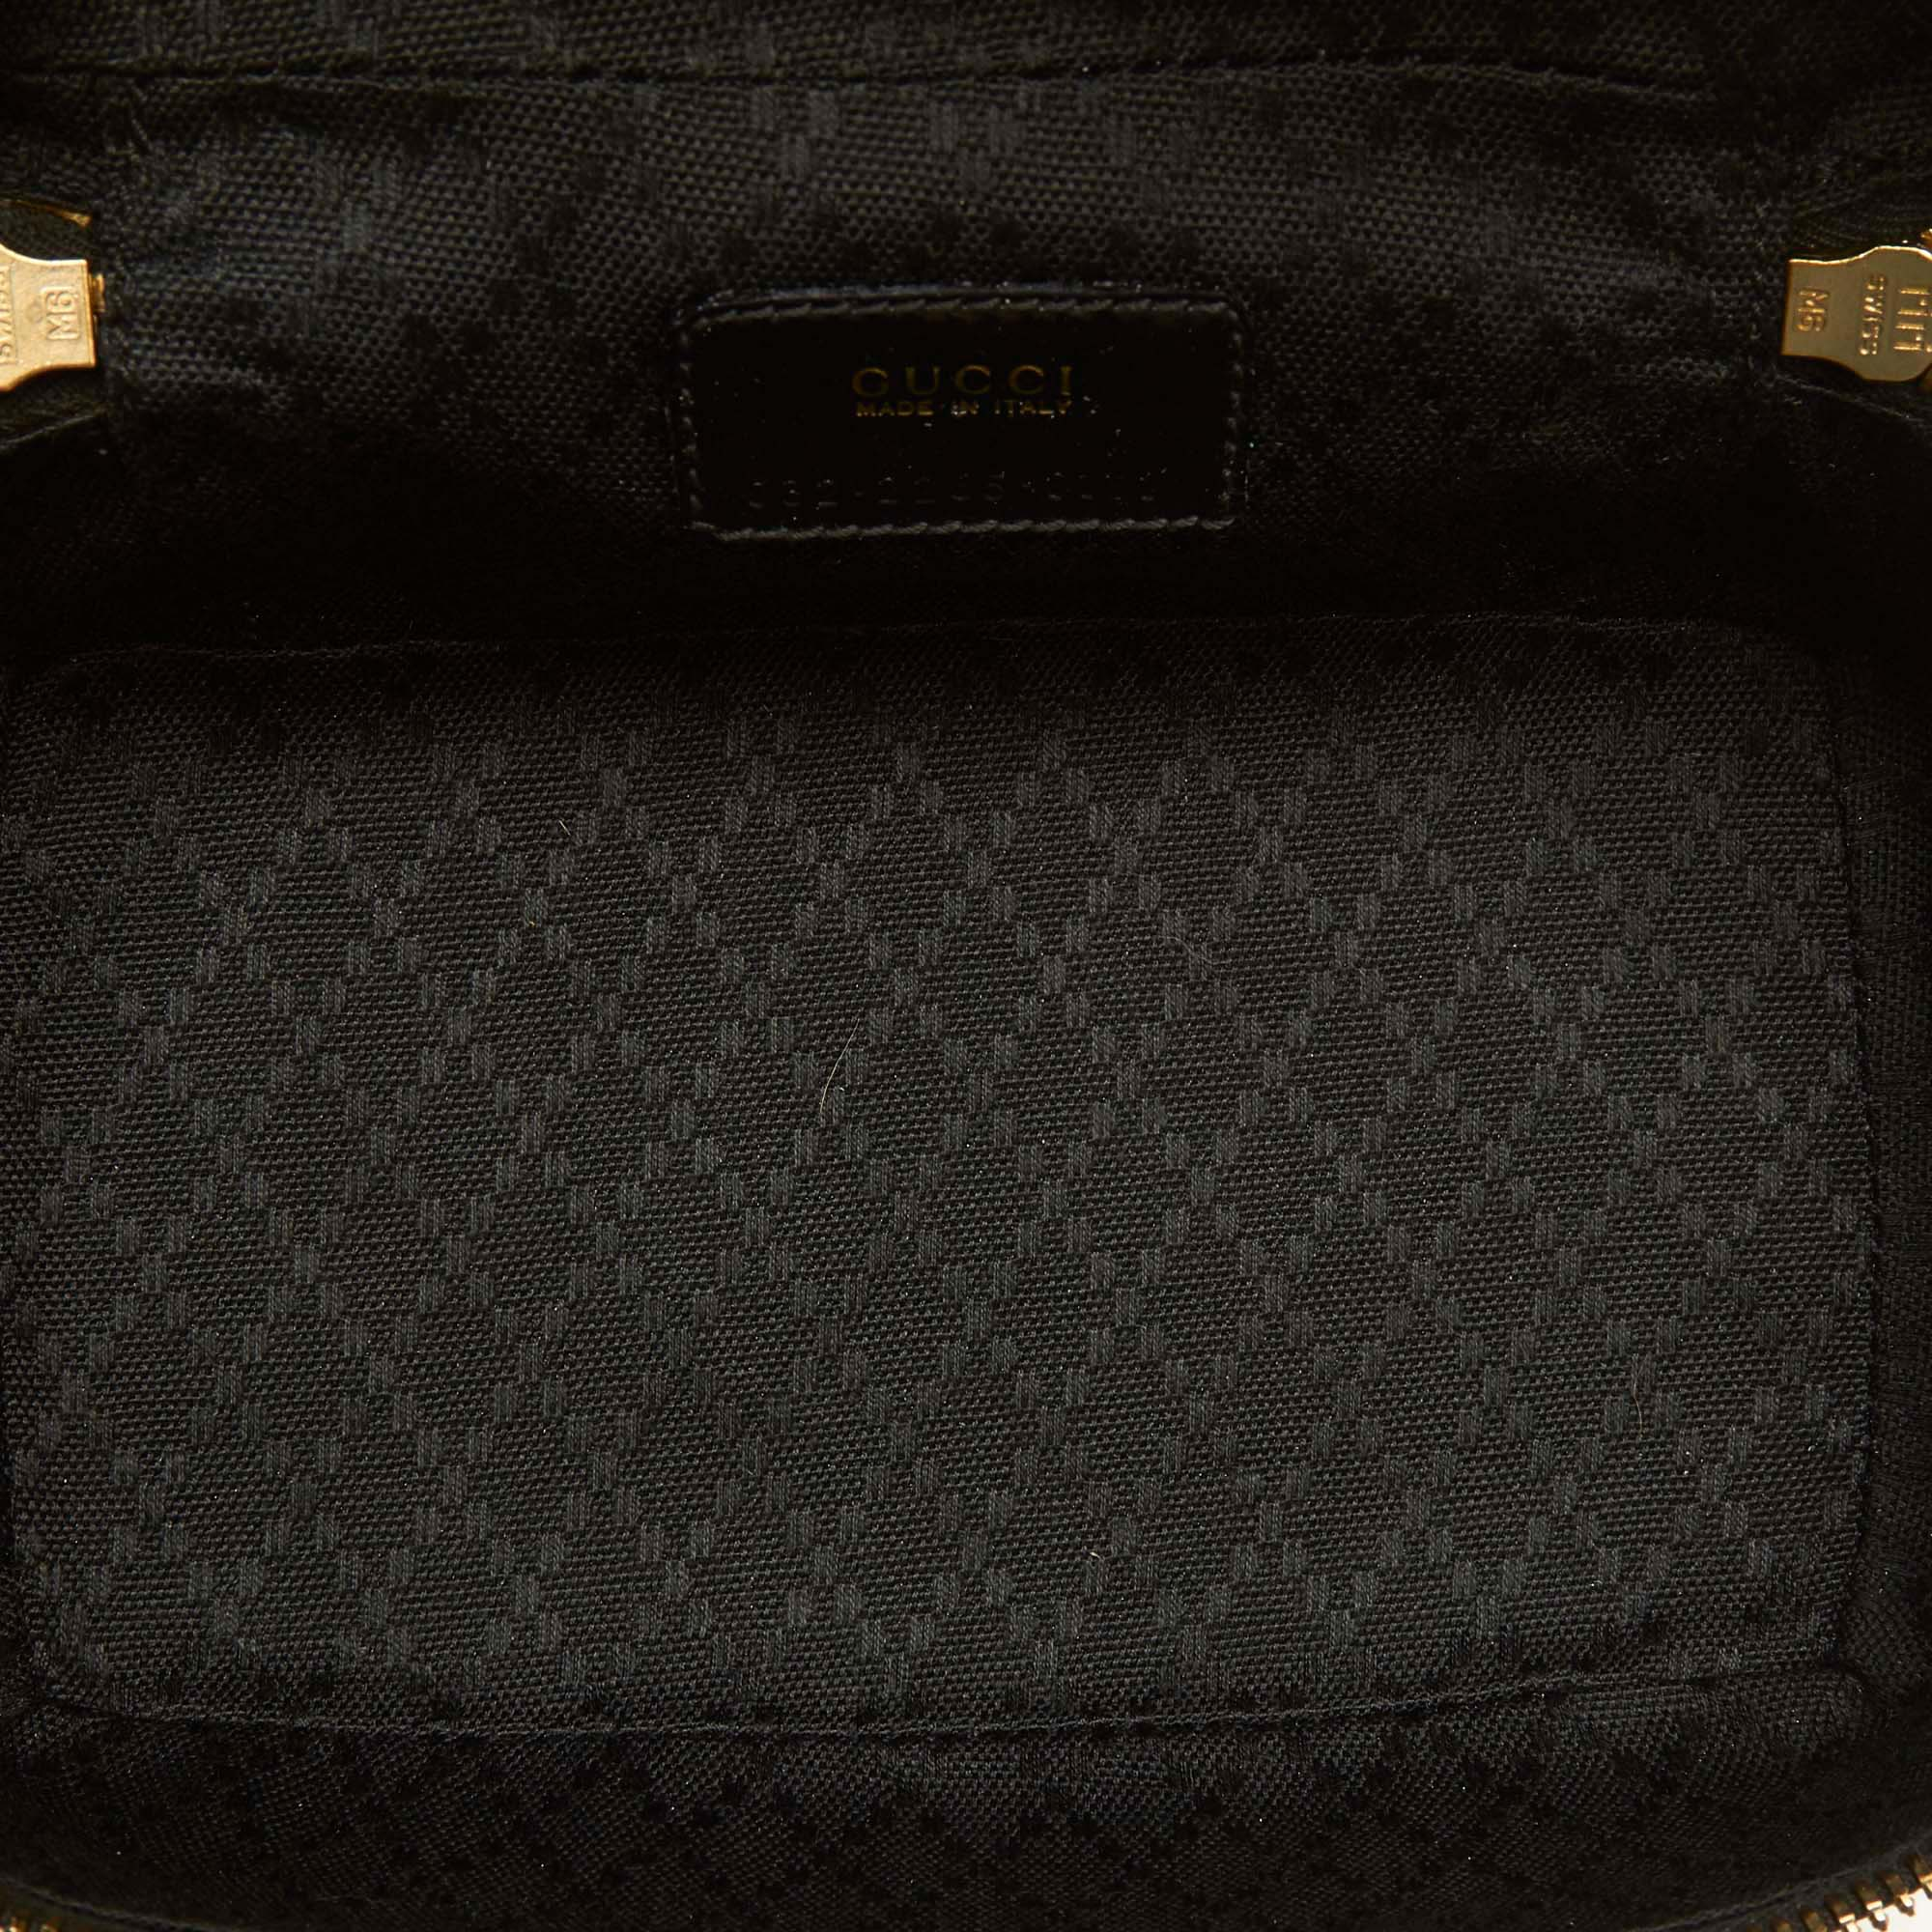 Gucci Black Patent Leather Bamboo Vanity Bag